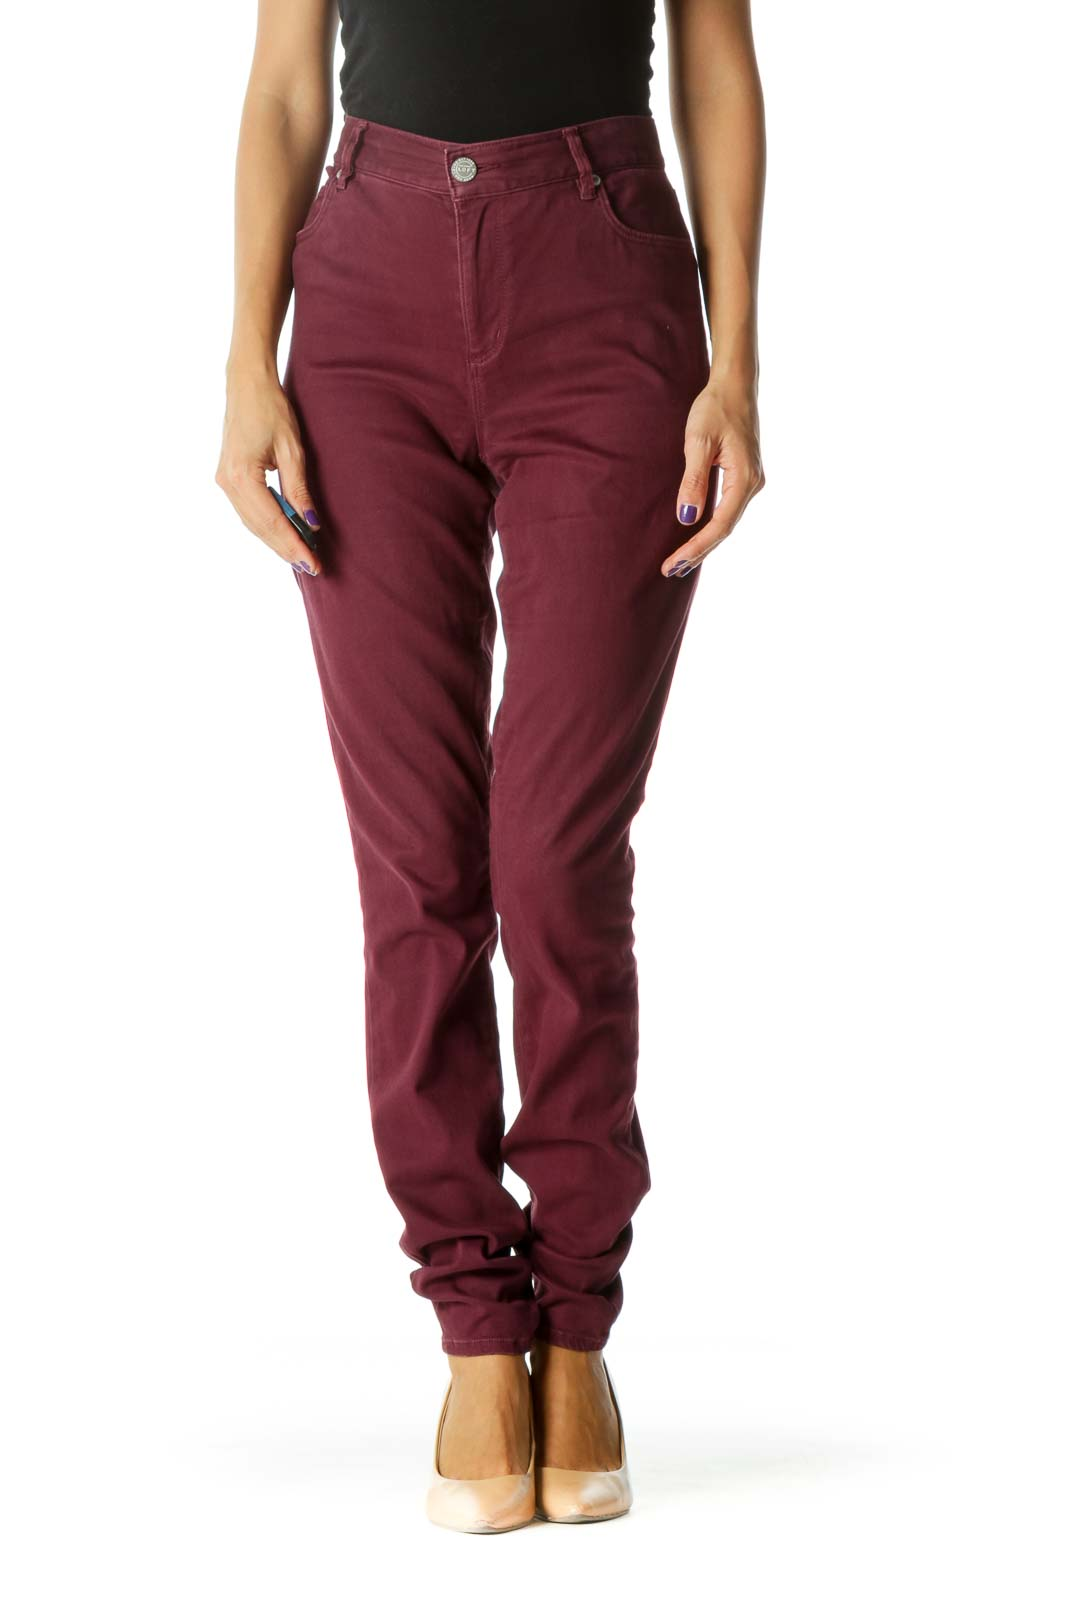 Burgundy Slim Fit Stretch Soft High Rise Leggings